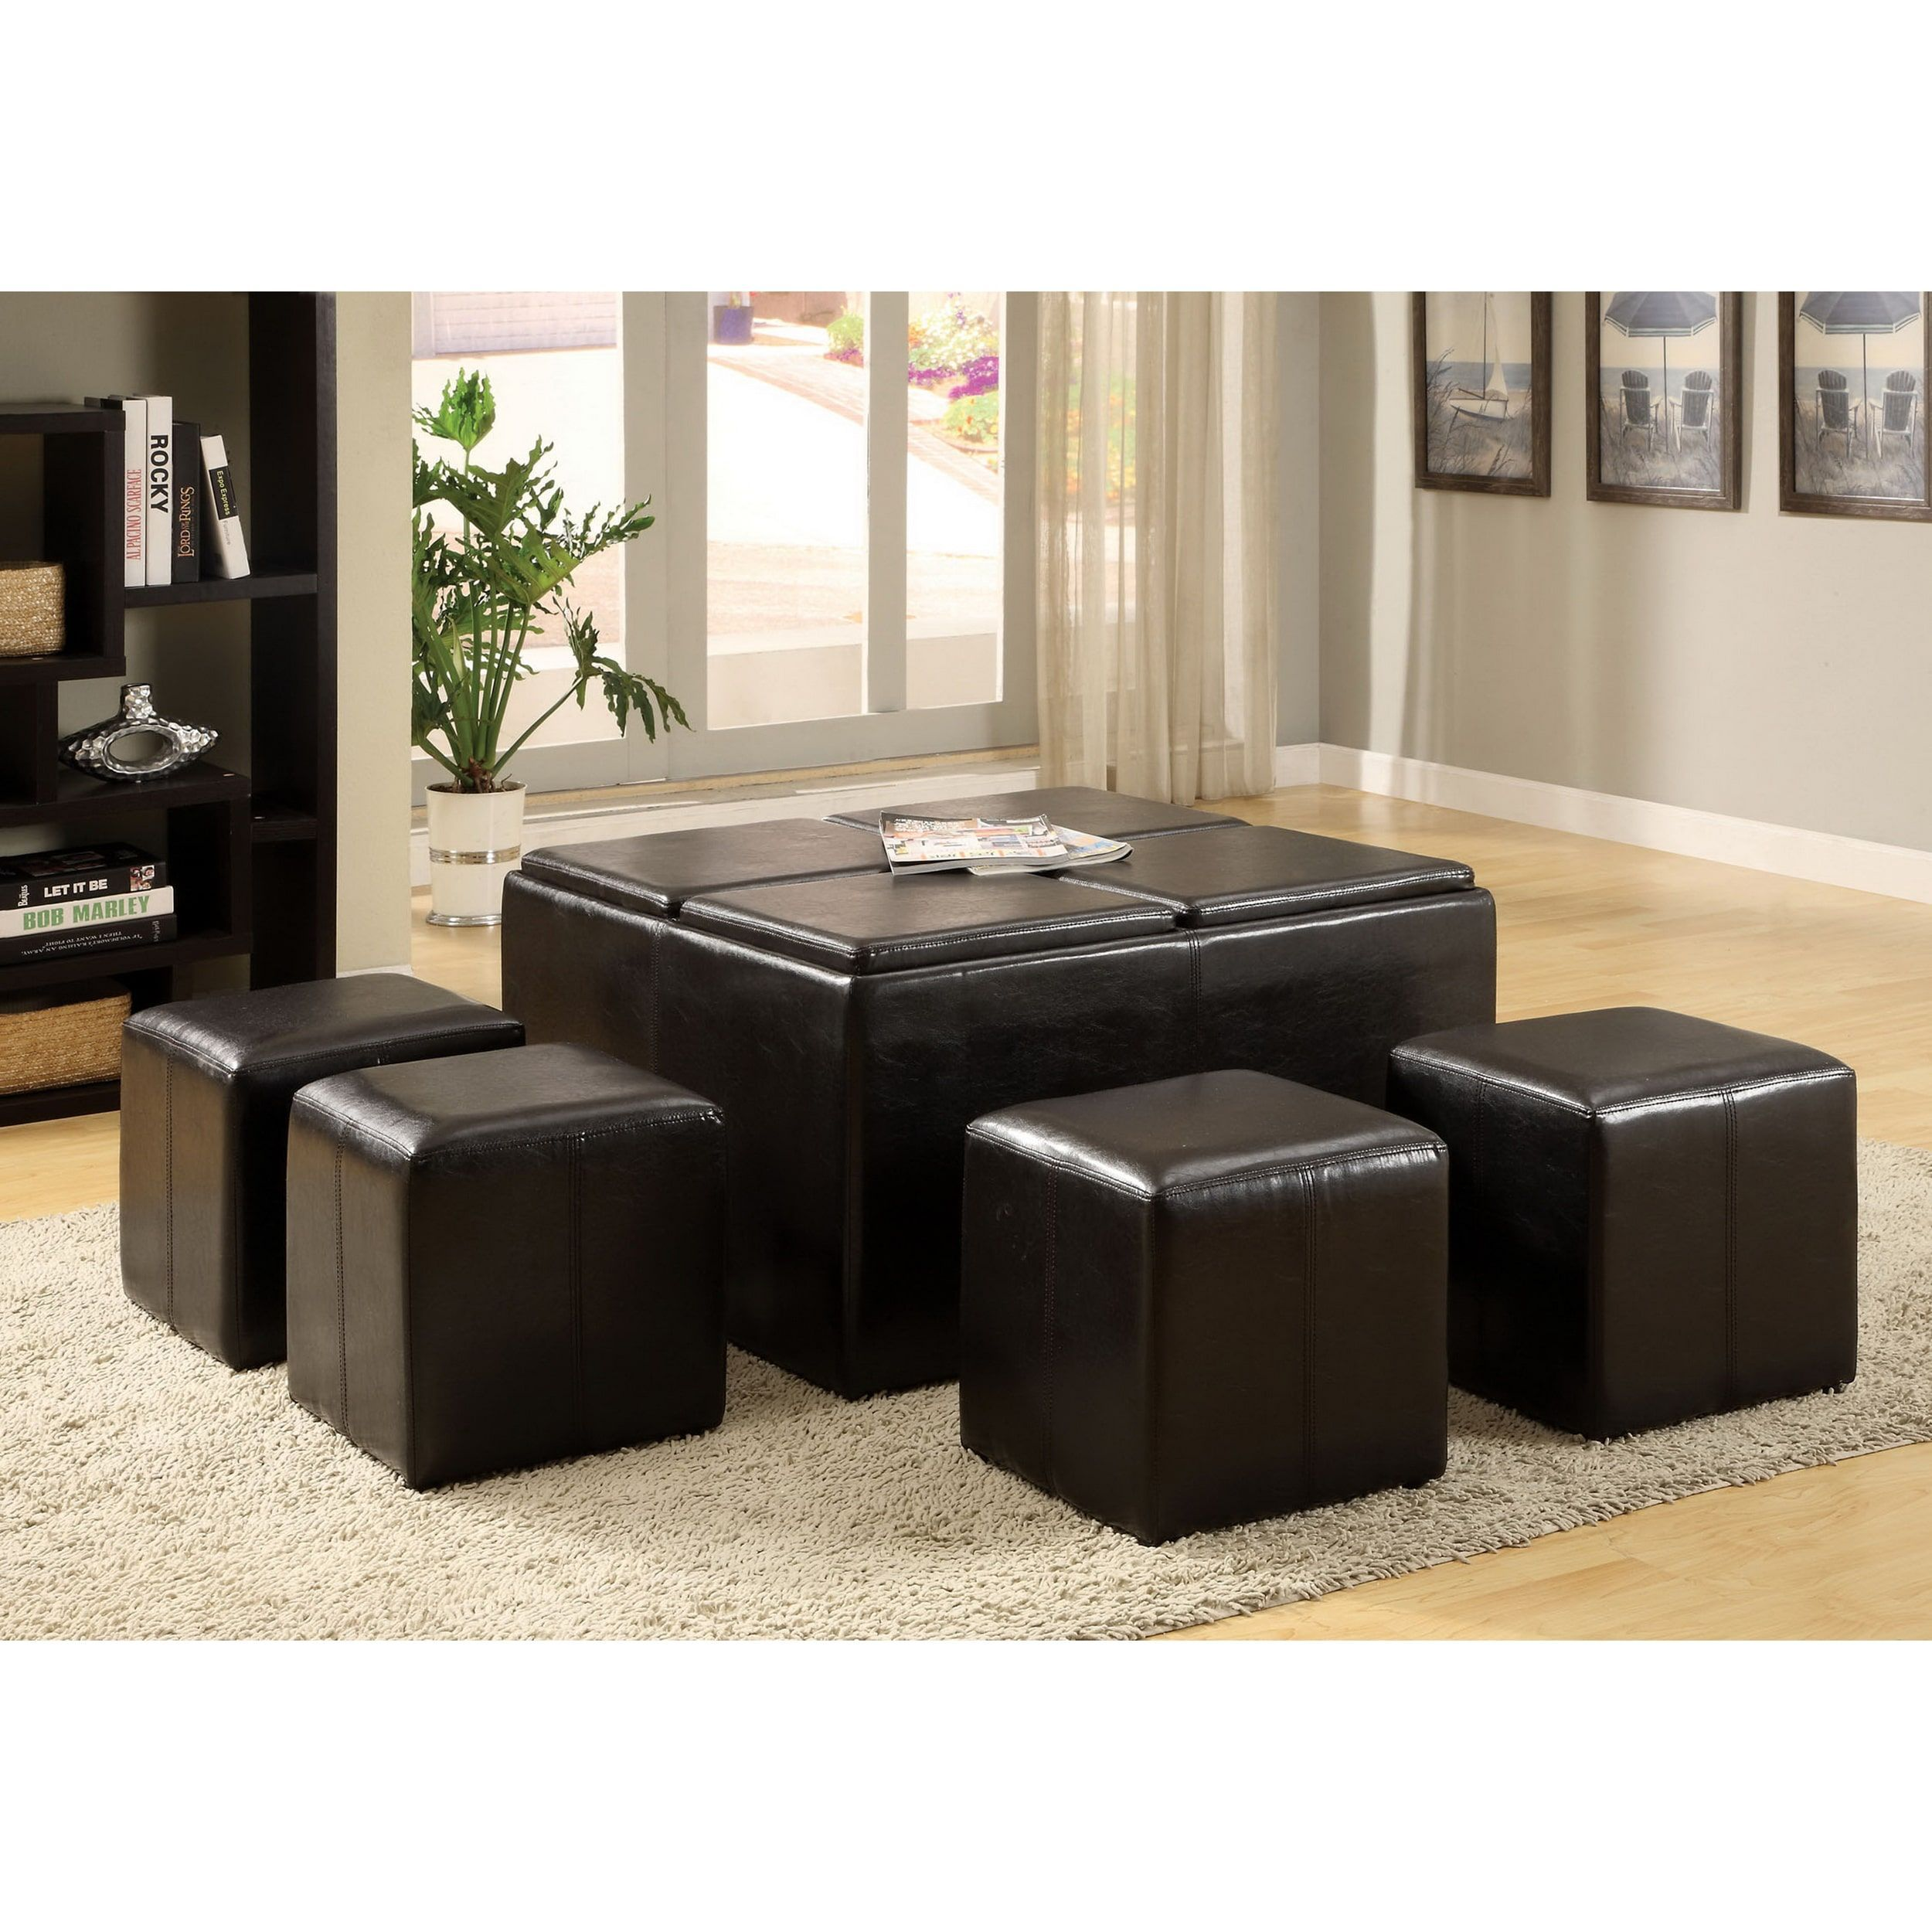 Overstock Com Online Shopping Bedding Furniture Electronics Jewelry Clothing More Ottoman Table Leather Coffee Table Coffee Table [ 2500 x 2500 Pixel ]